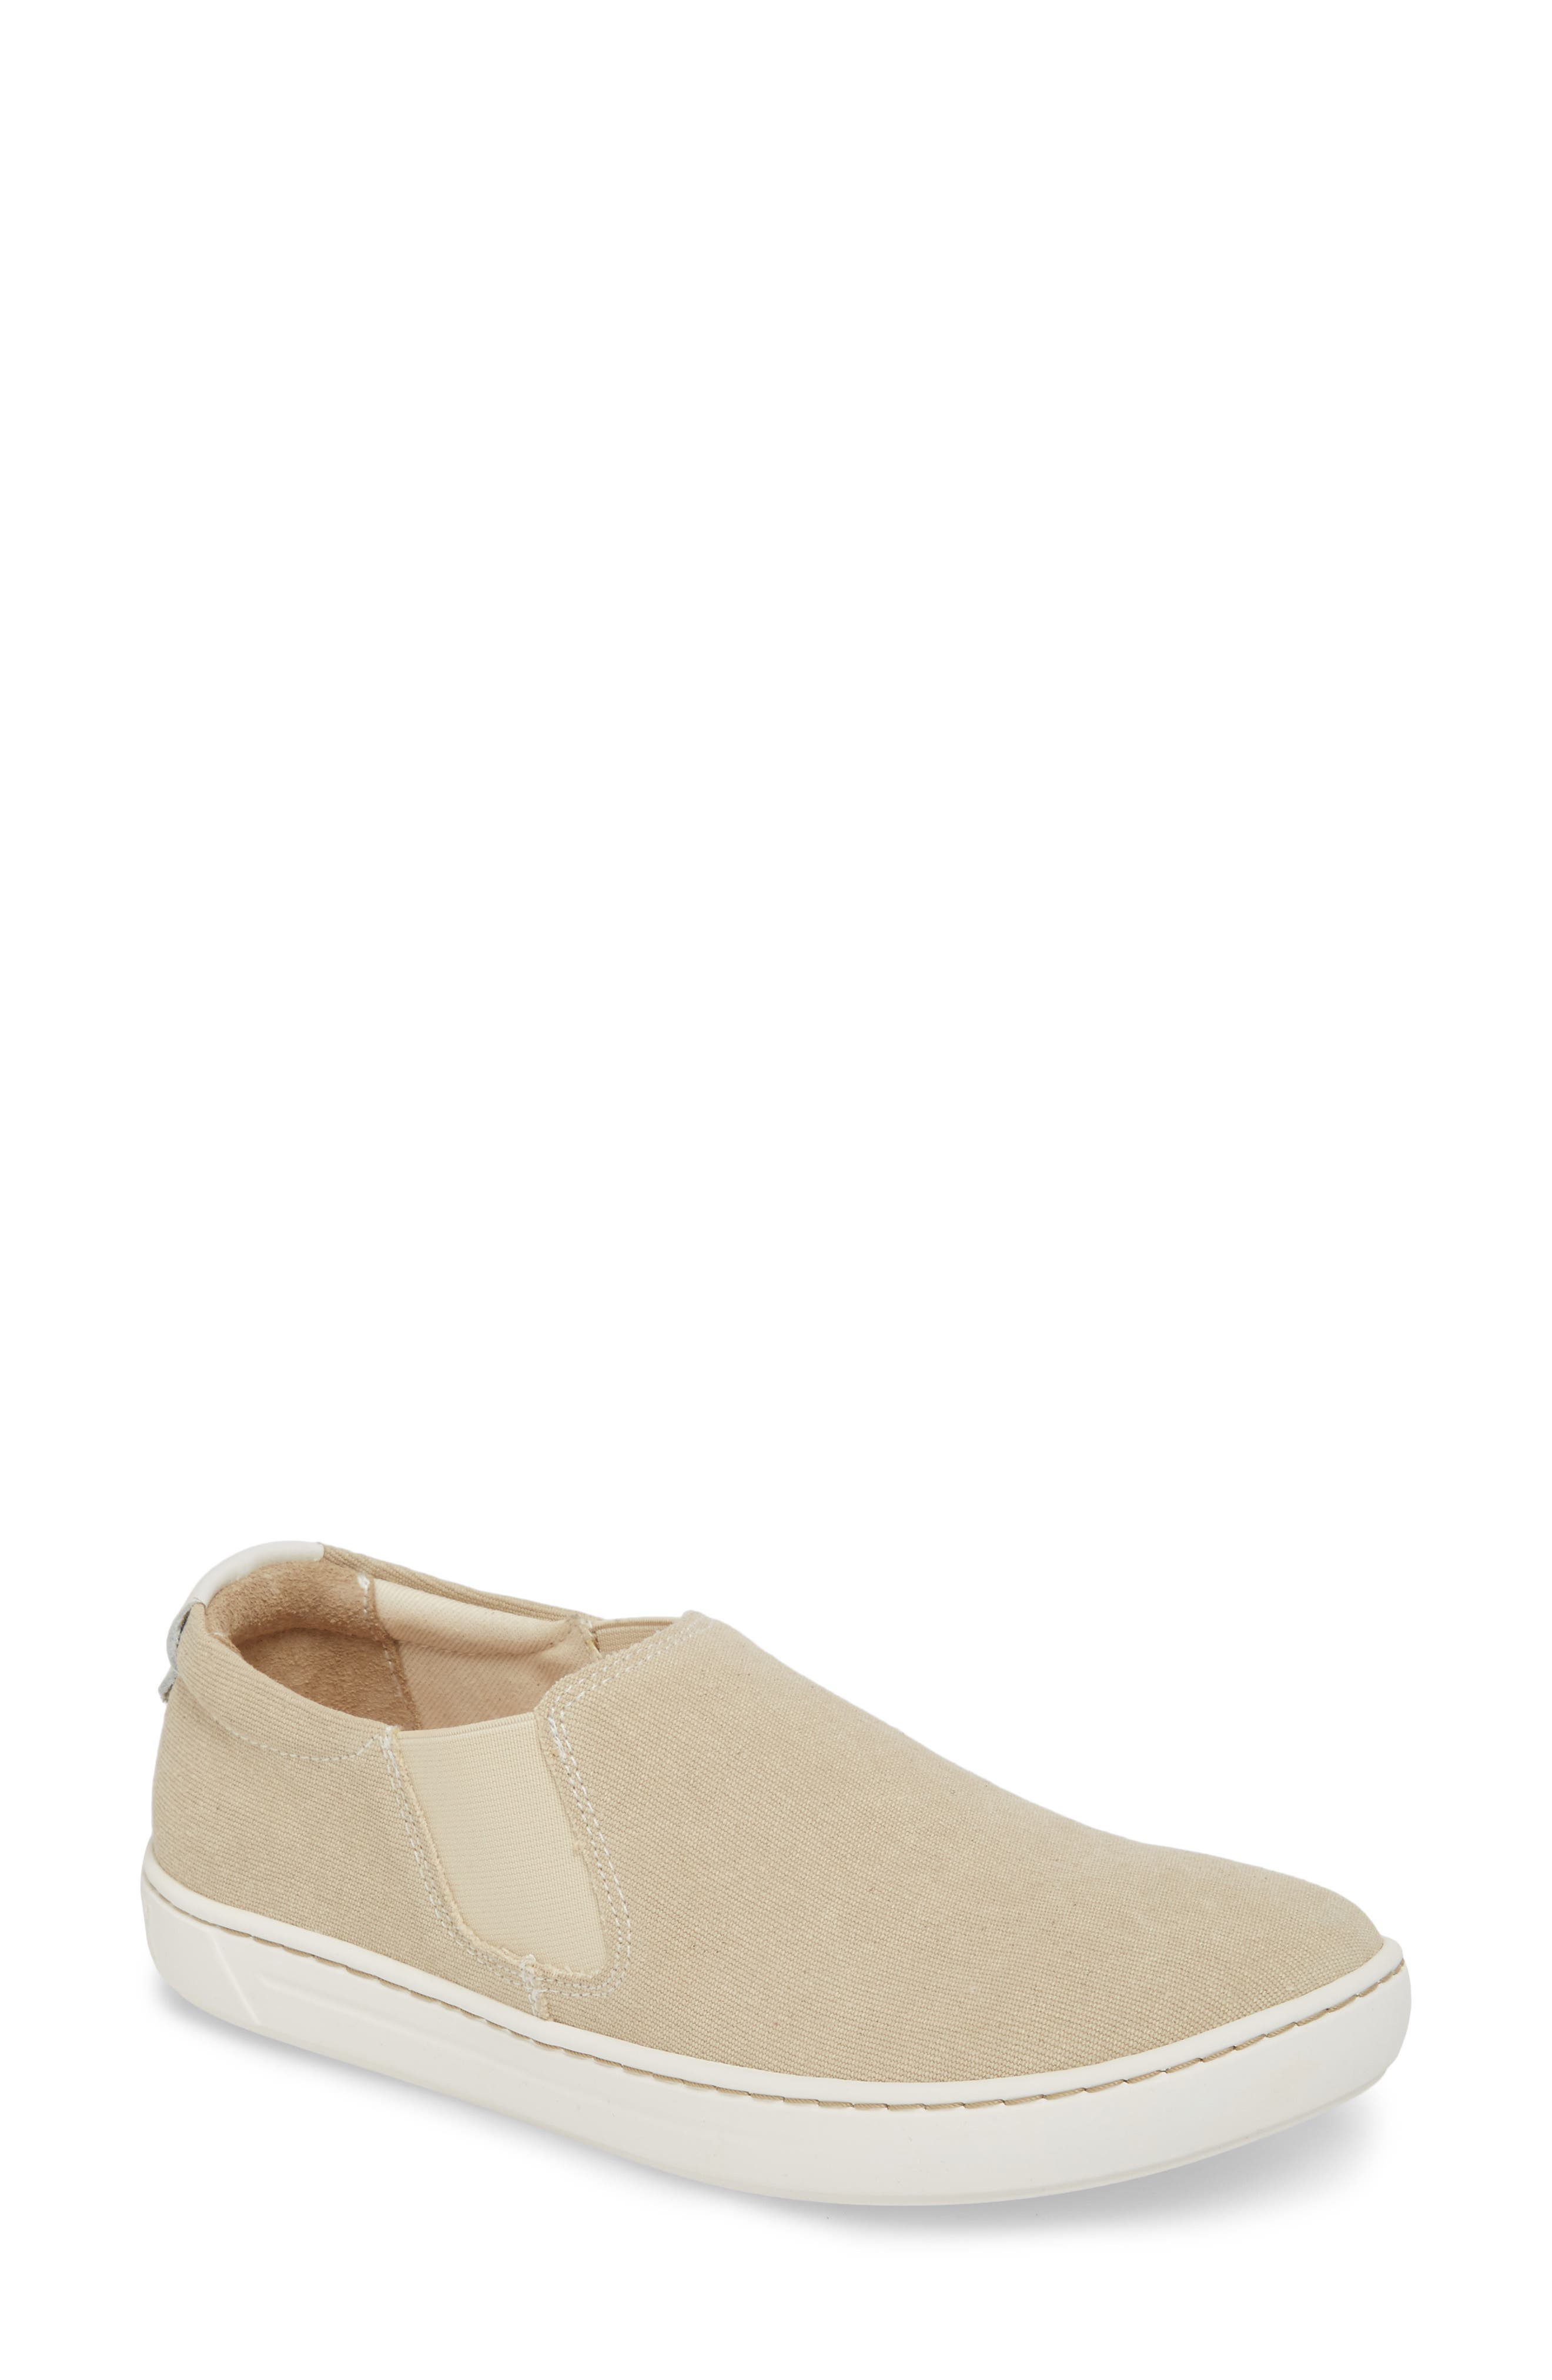 Barrie Slip-On Sneaker,                         Main,                         color, Sand Canvas